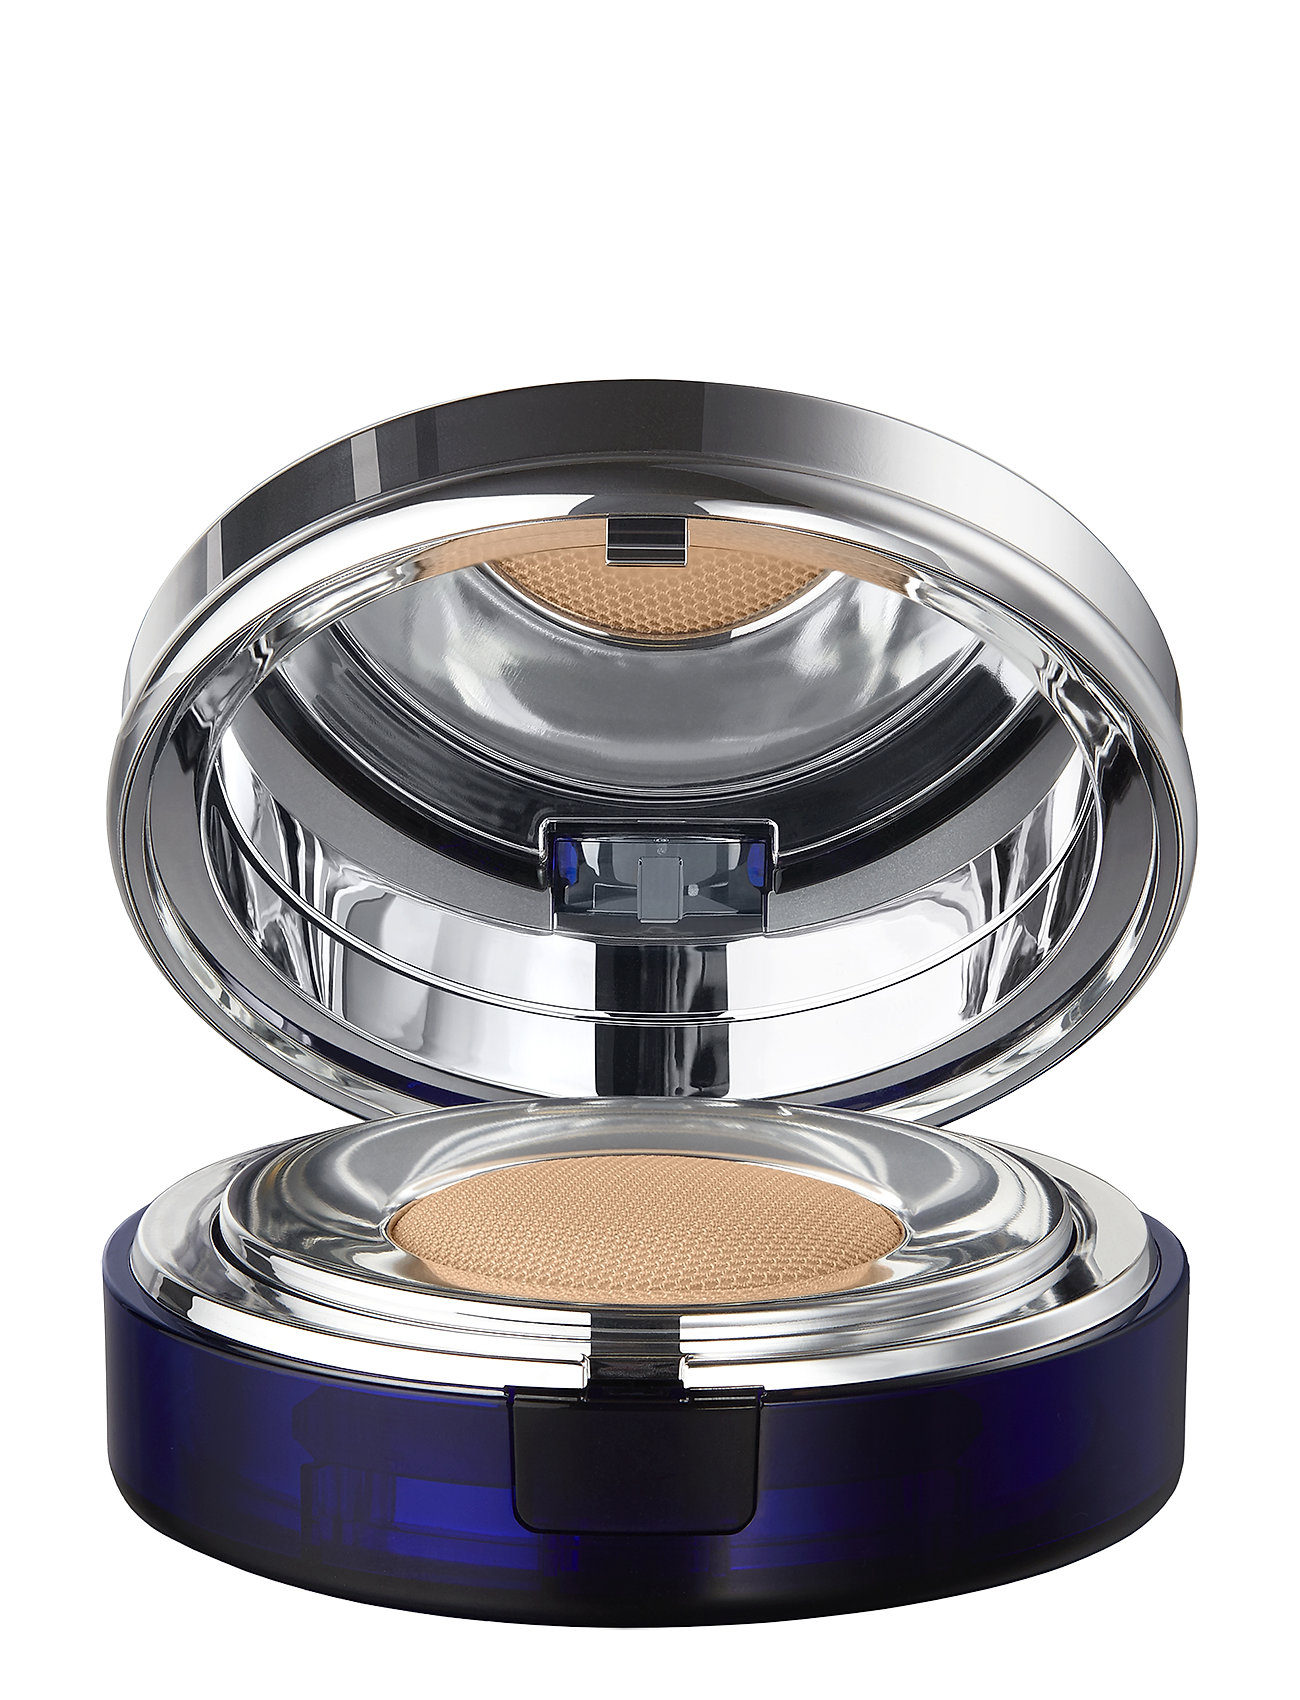 Image of Essence In Foundation Peche Compact Foundation Foundation Makeup La Prairie (3067524565)